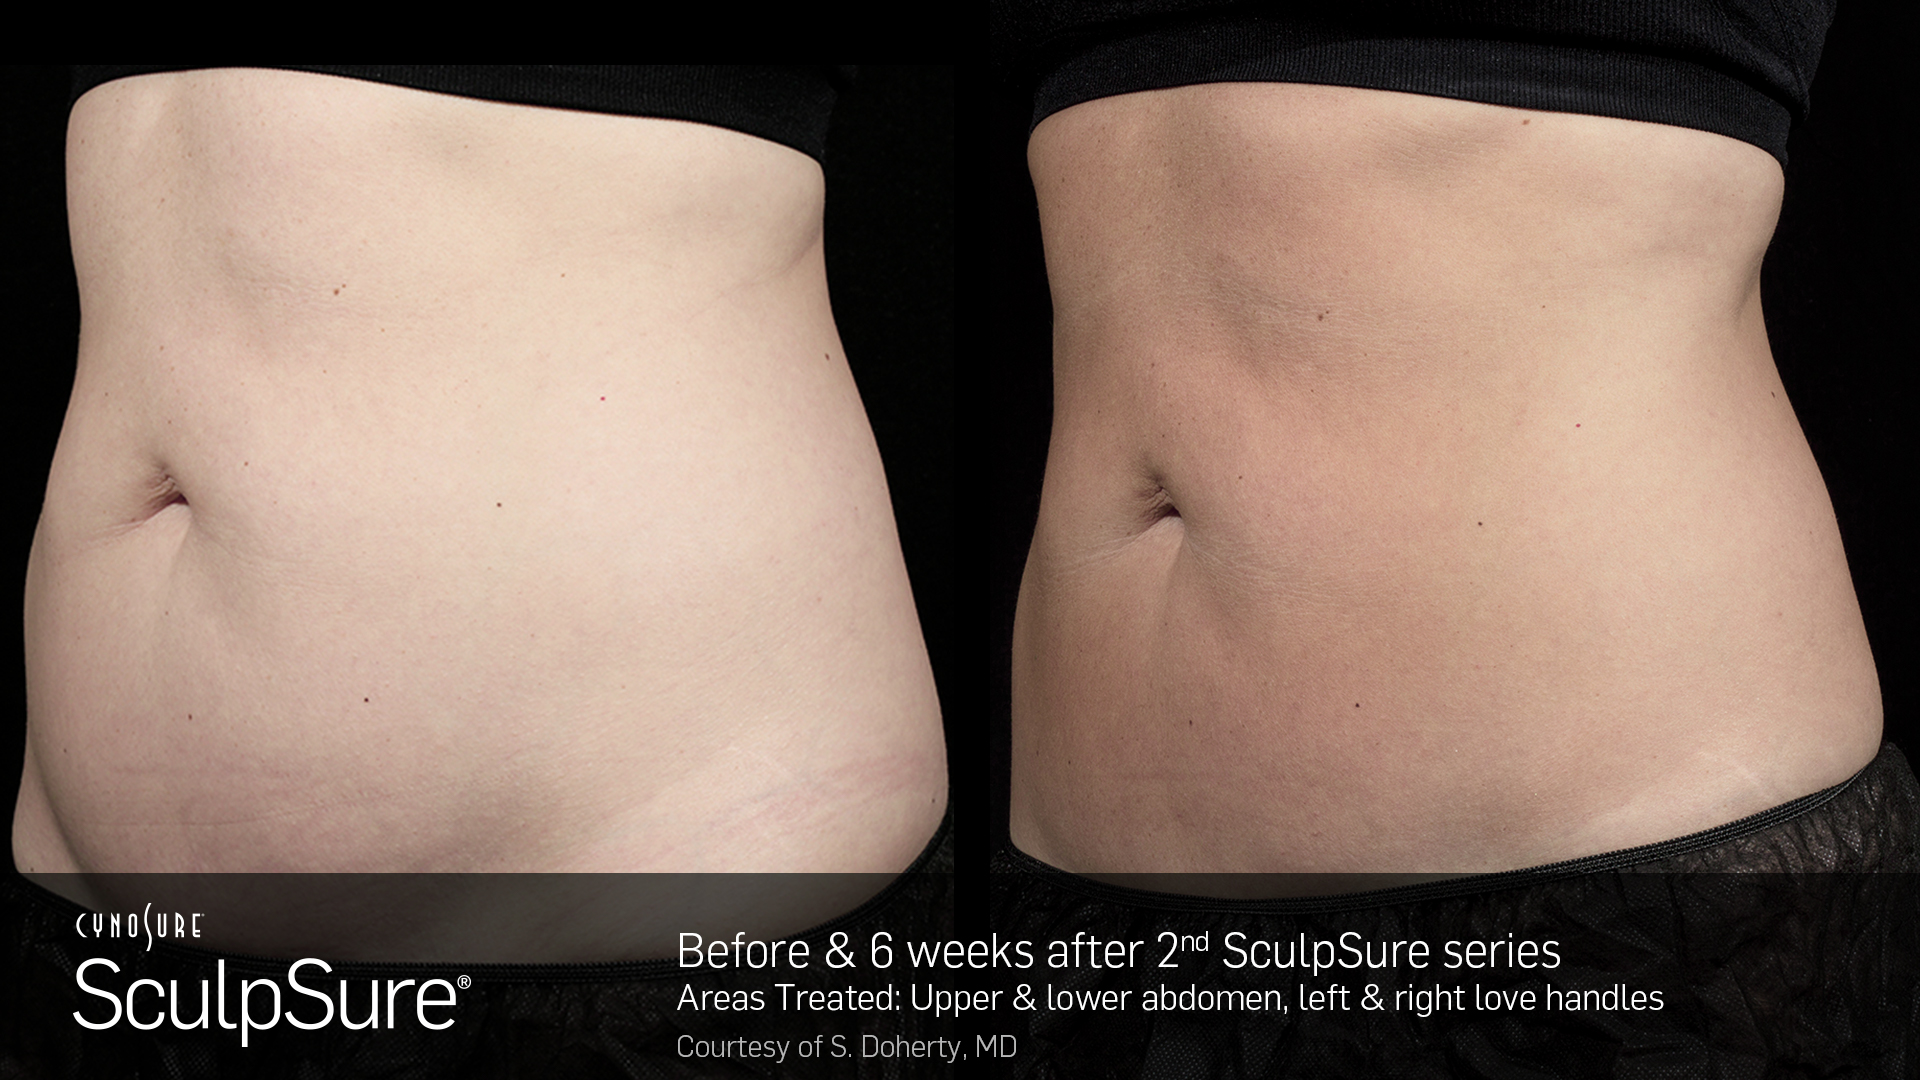 CynoSure SculpSure patient after 2nd sculpsure series